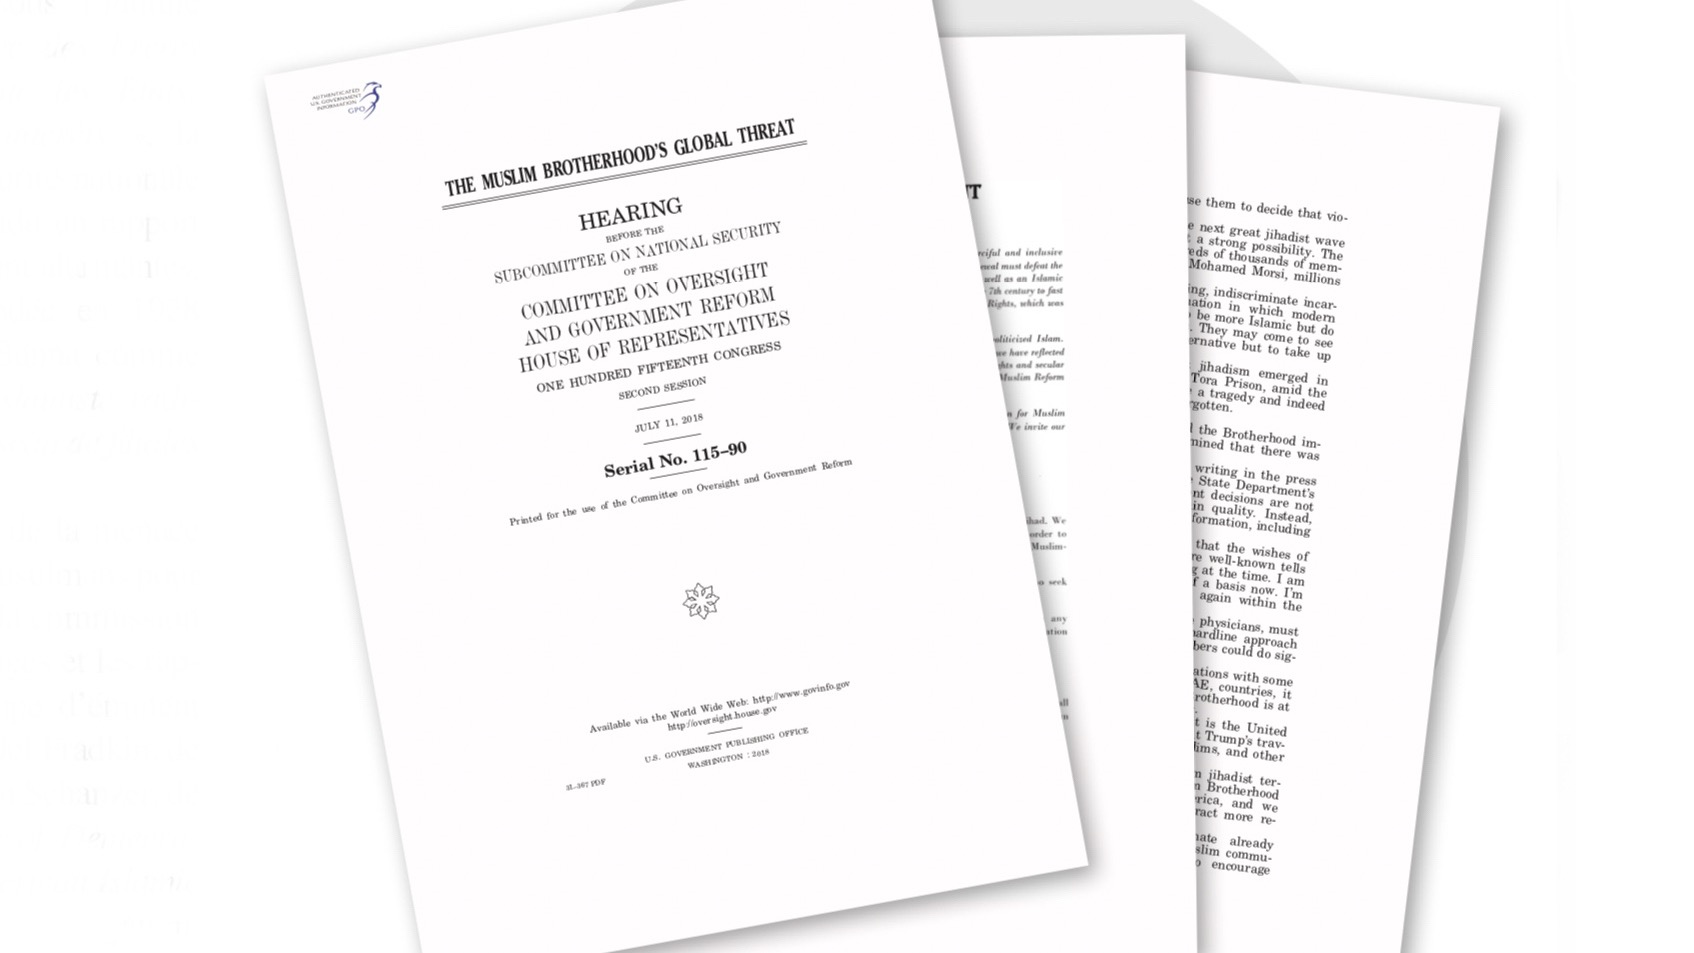 The report of the US Congress that alarms the Muslim Brotherhood